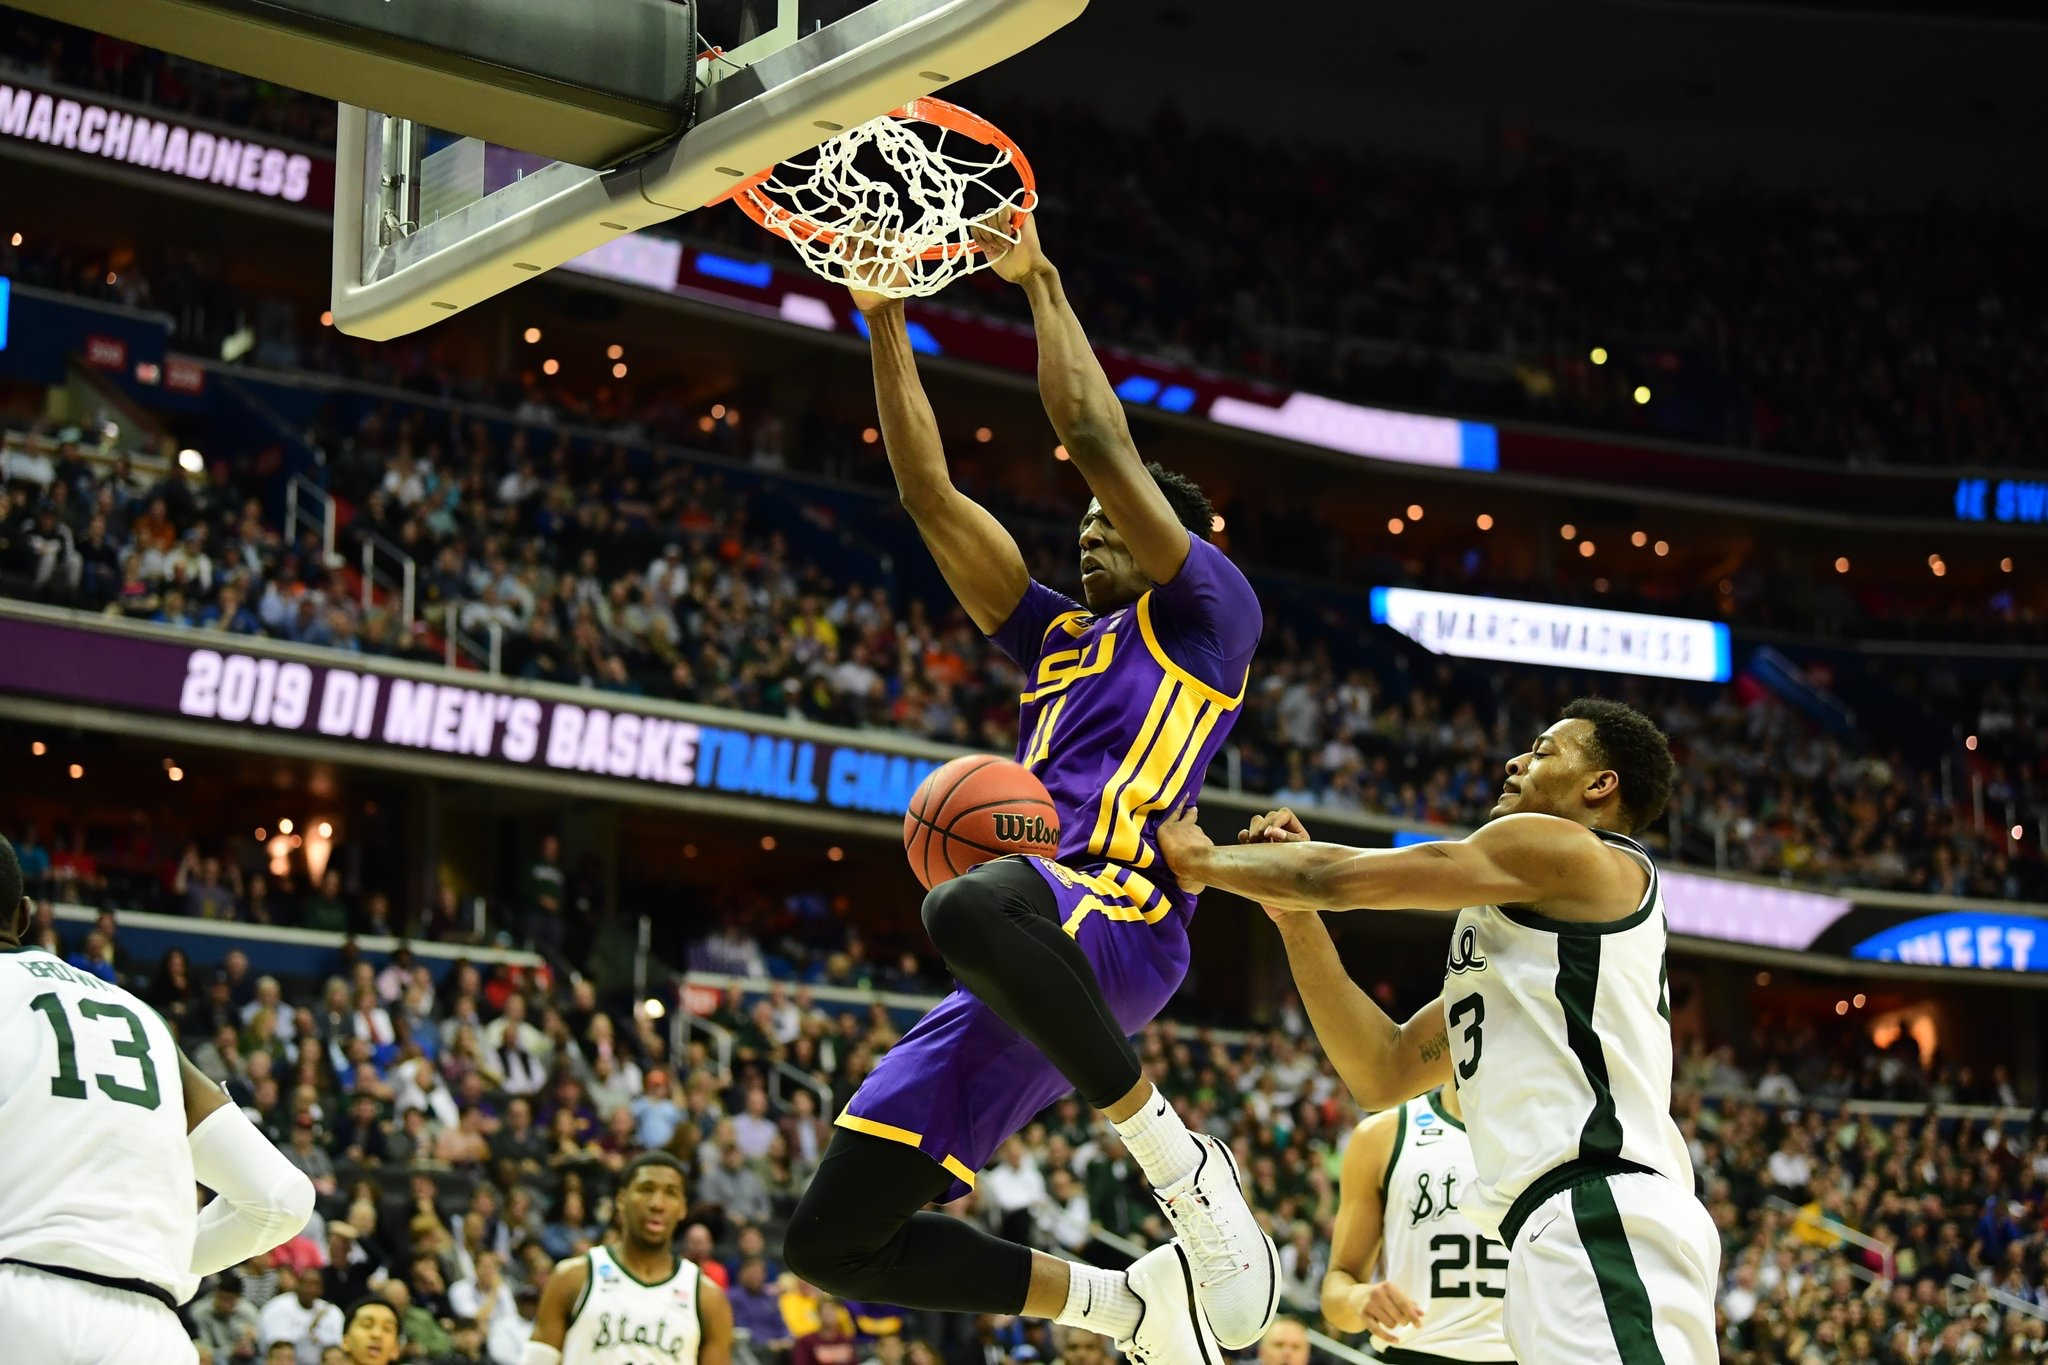 LSU's historic season ends with loss in Sweet 16